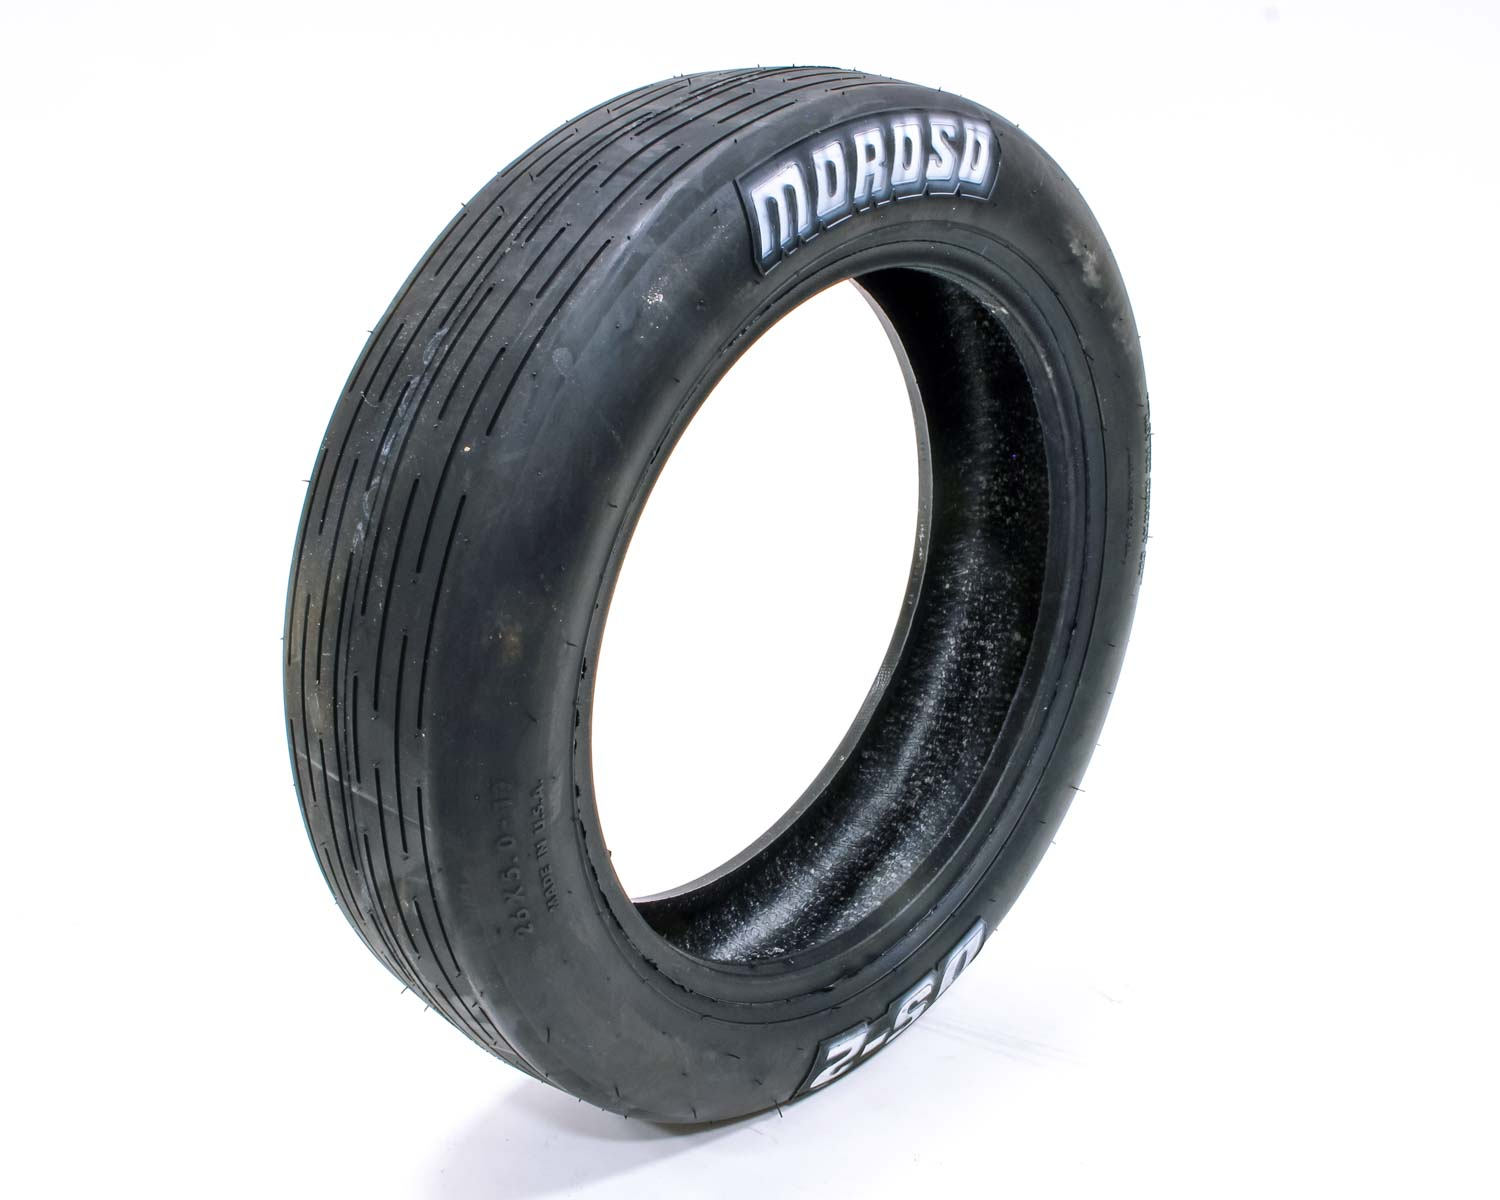 26.0/5.0-17 DS-2 Front Drag Tire